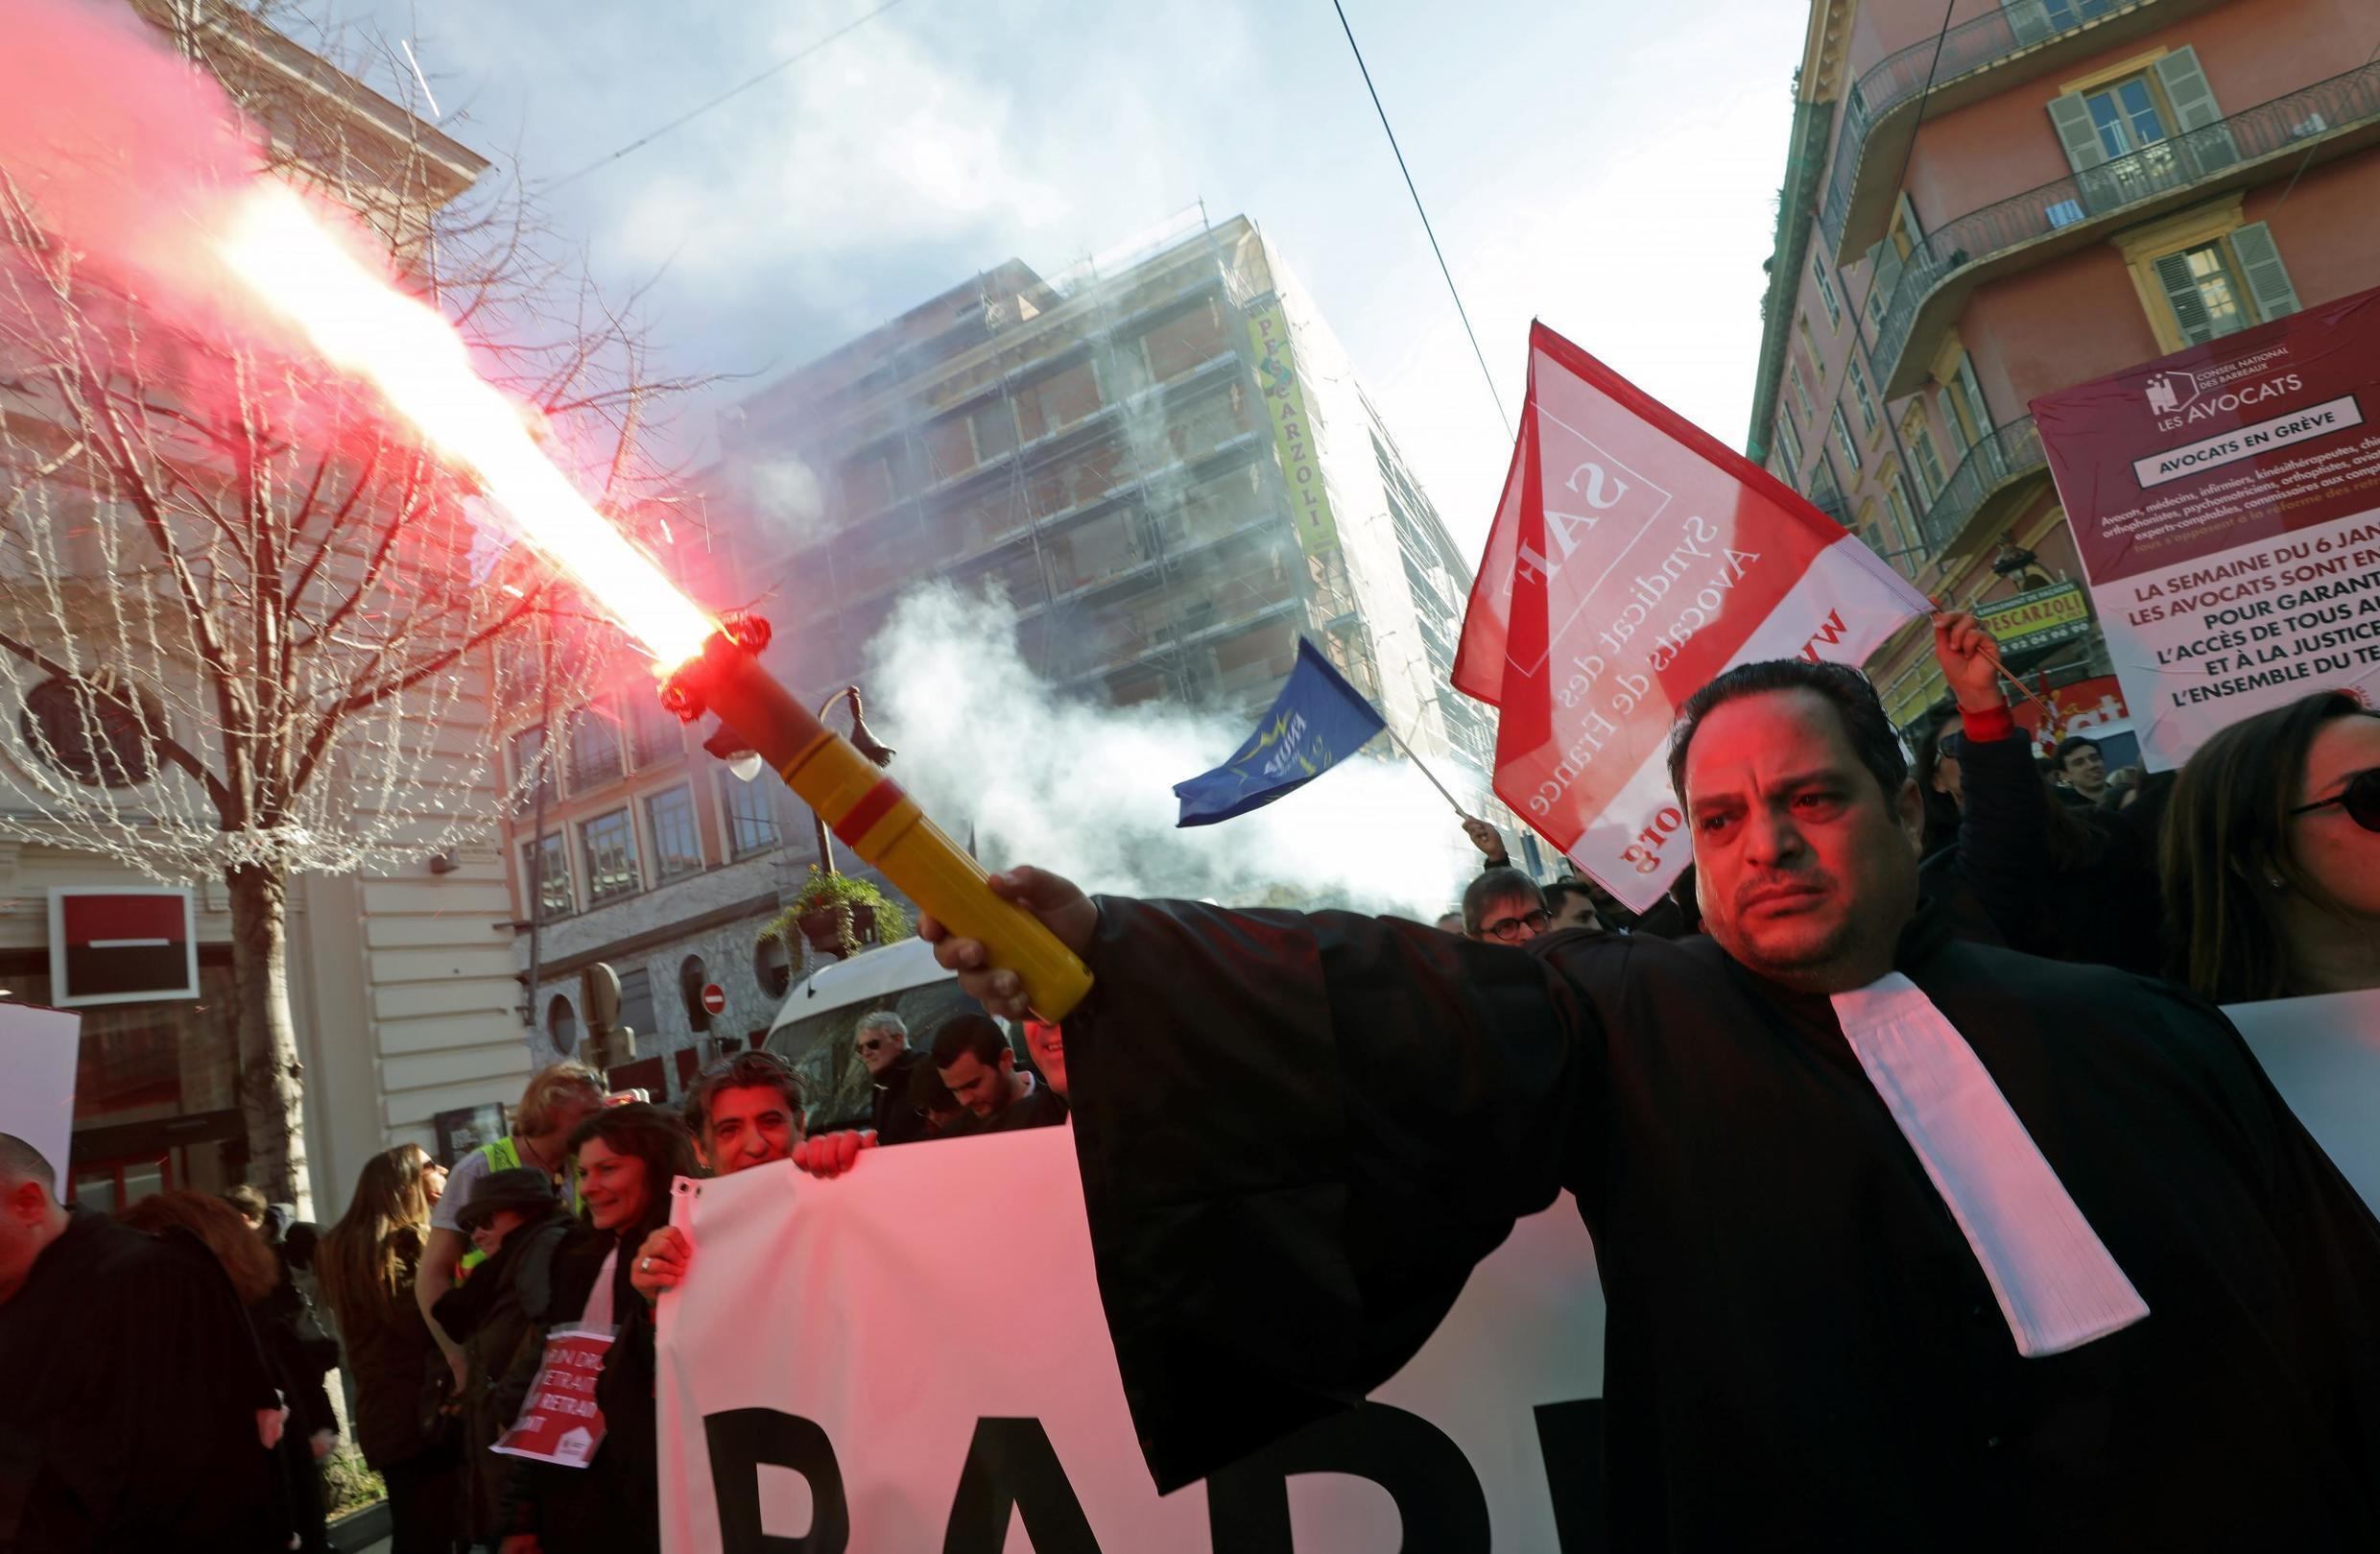 A French lawyer holds a flare as he demonstrates during a strike against French government's pensions reform plans, in Nice, France.